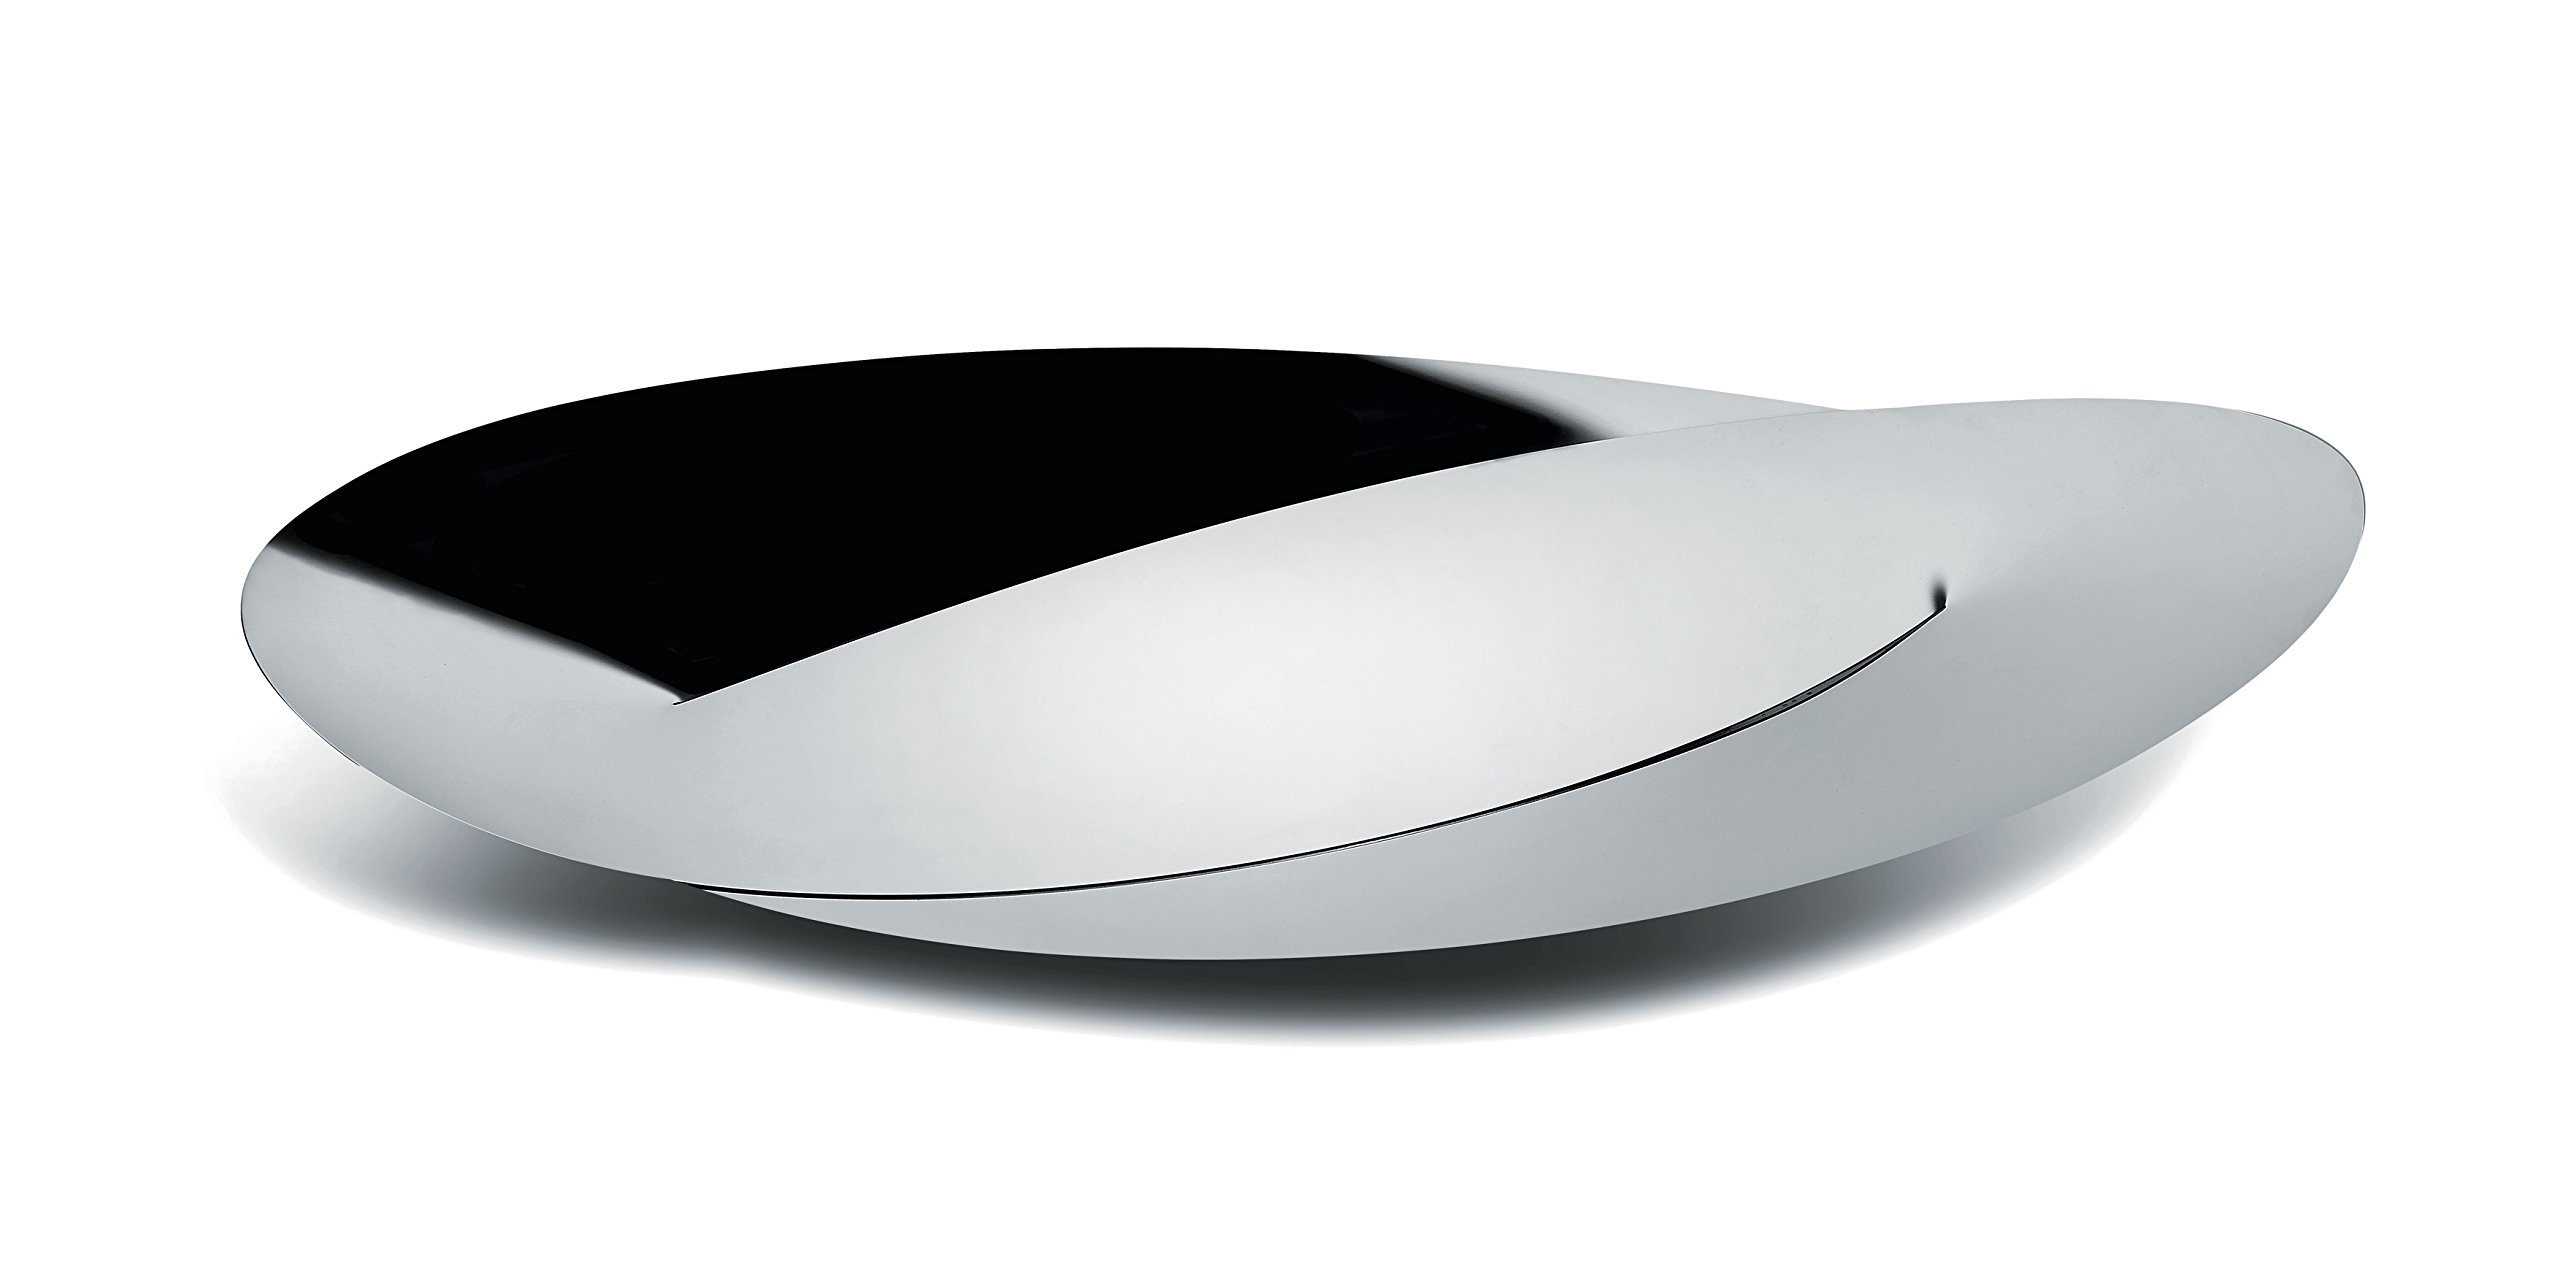 Alessi''Octave'' Centerpiece in 18/10 Stainless Steel Mirror Polished, Silver